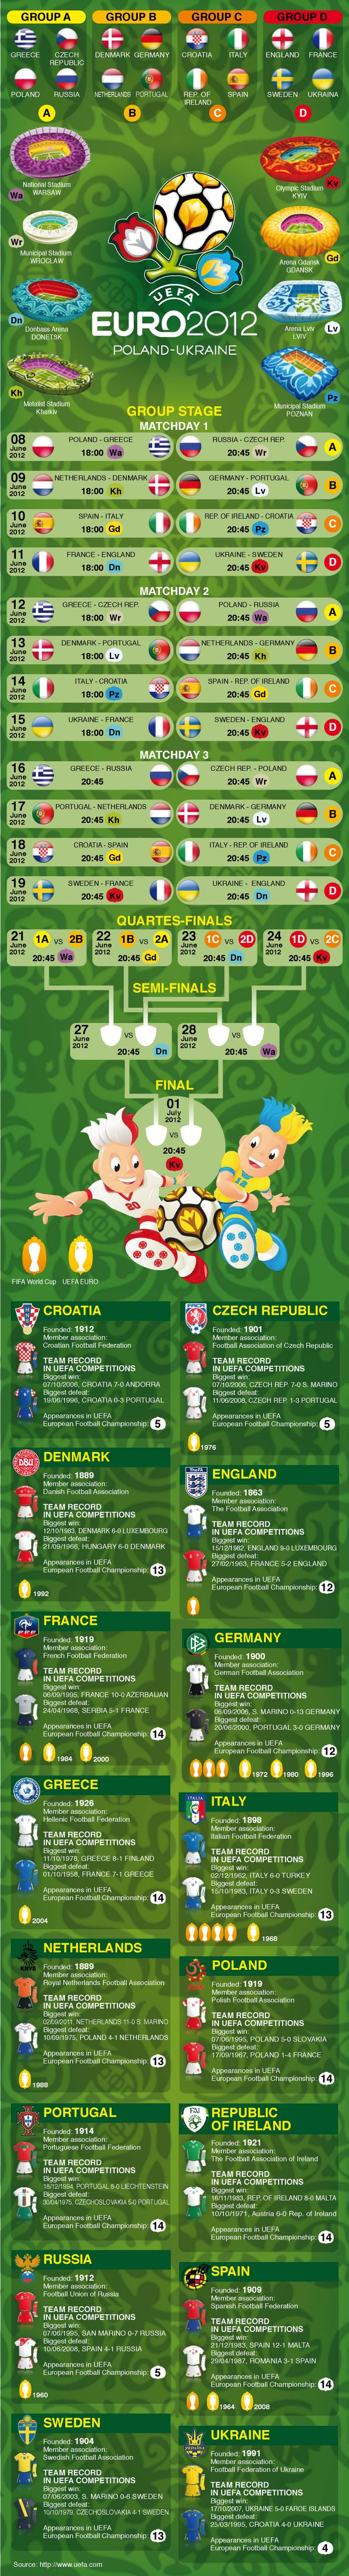 INFOGRAPHIC: EURO 2012 IN REVIEW